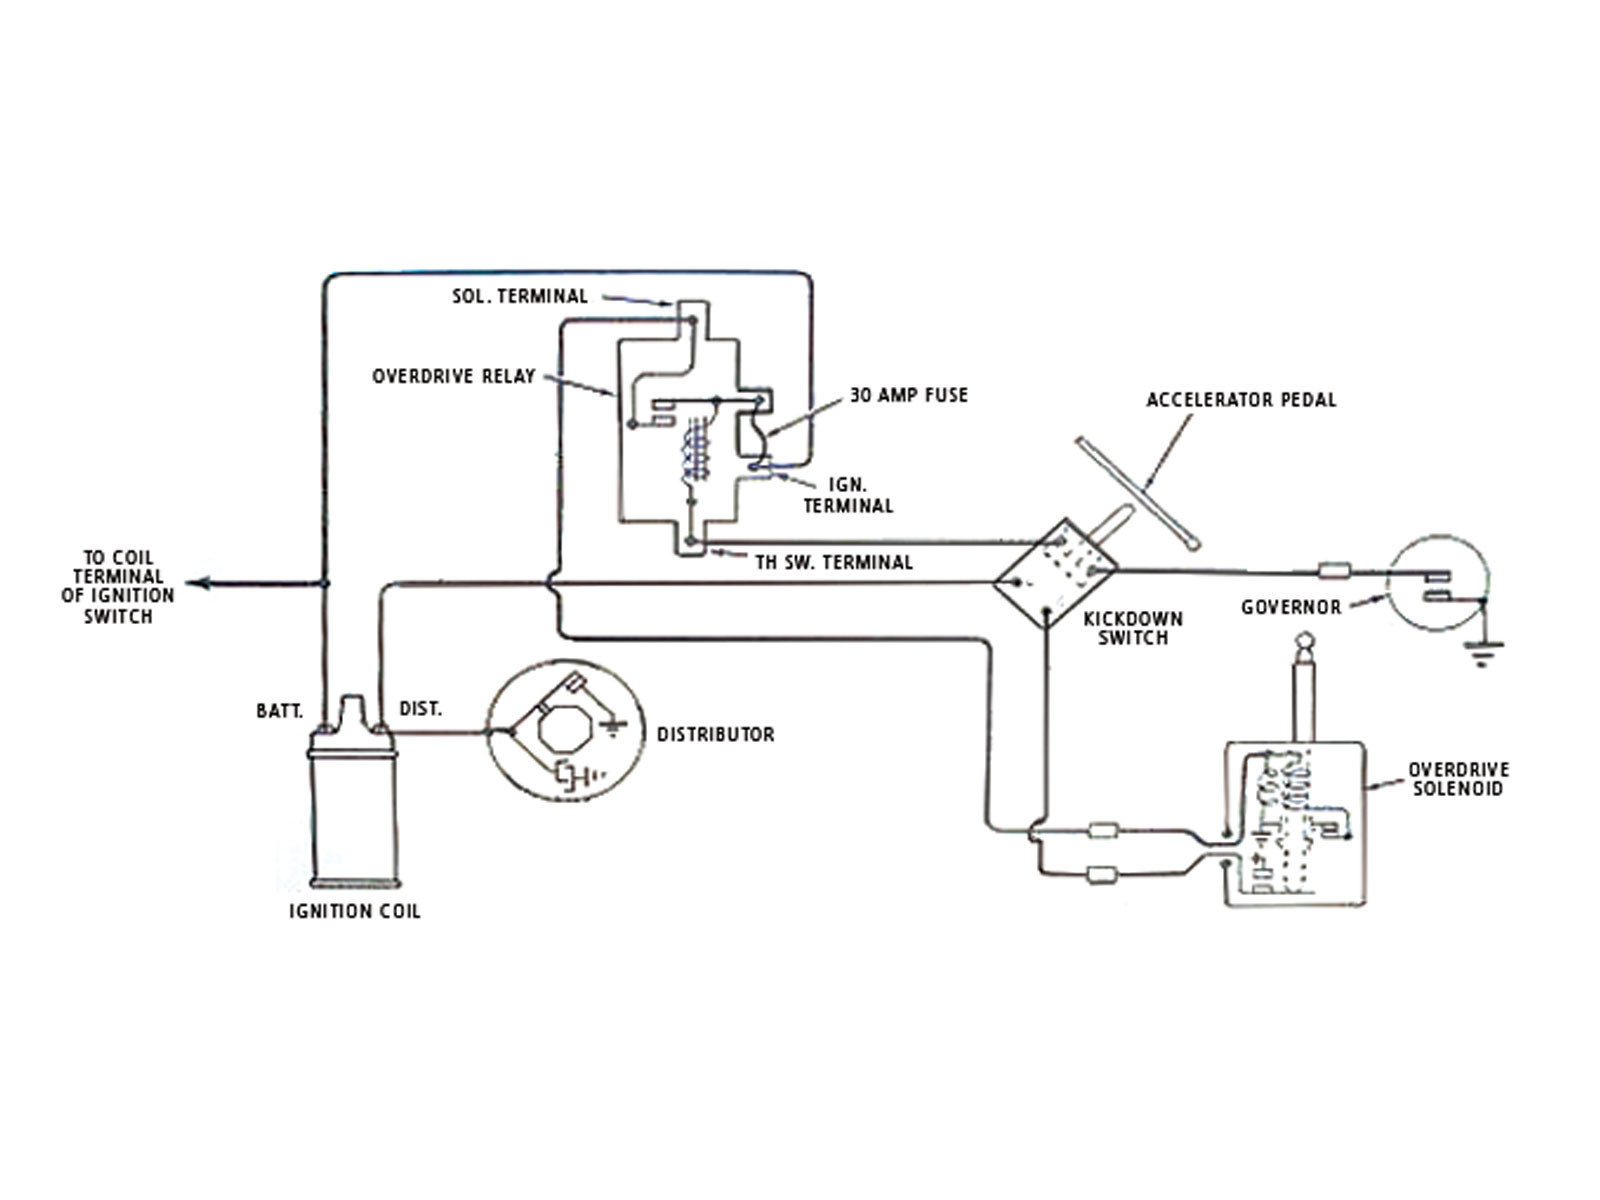 omron safety relay wiring diagram Download-Wiring Diagram for Pilz Safety Relay Valid Perfect Ab Safety Relay Collection Best for Wiring Diagram 7-q